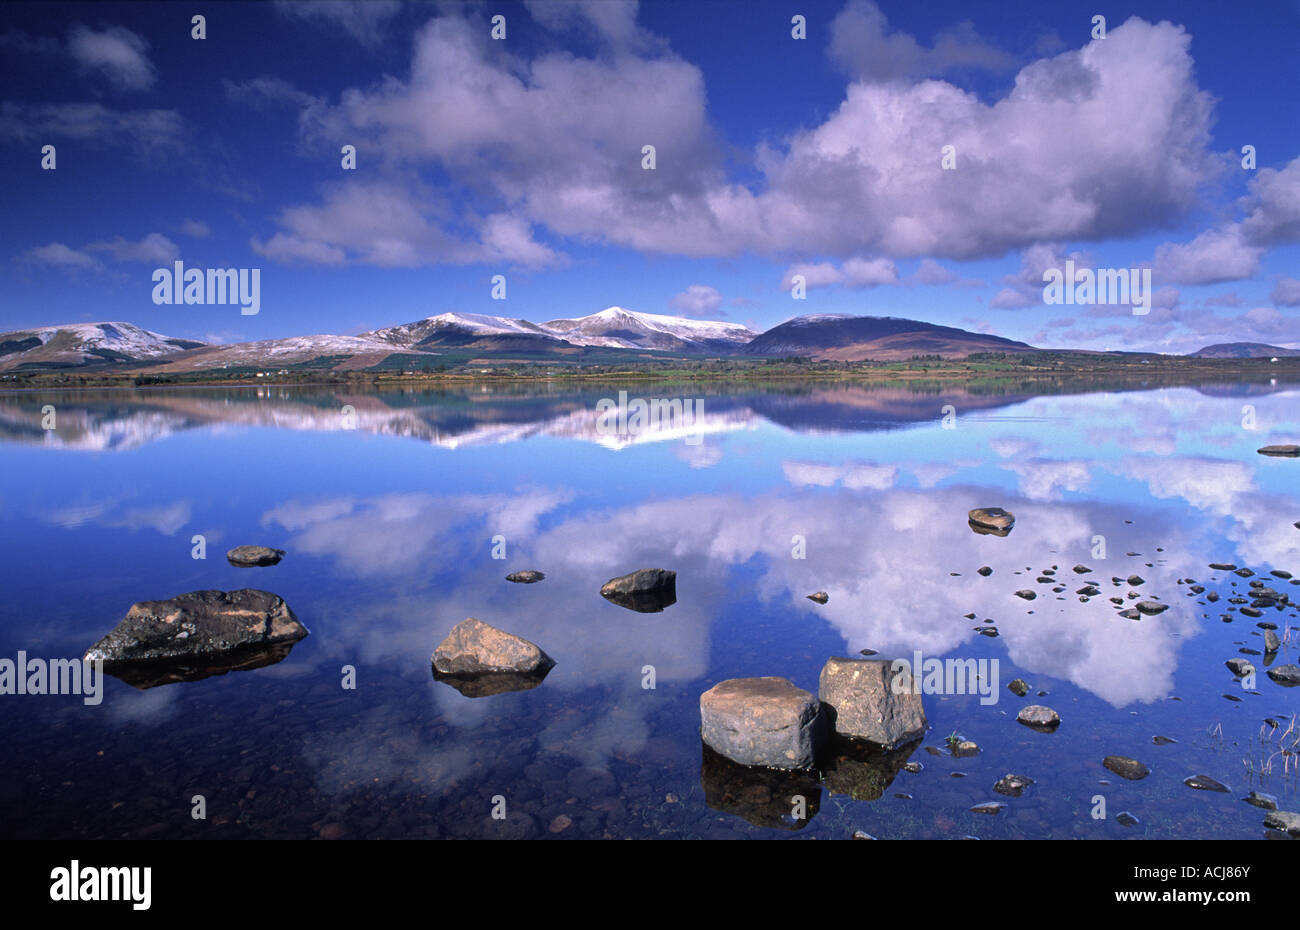 Snow capped Nephin Beg Mountains reflected in Beltra Lough, County Mayo, Ireland. - Stock Image